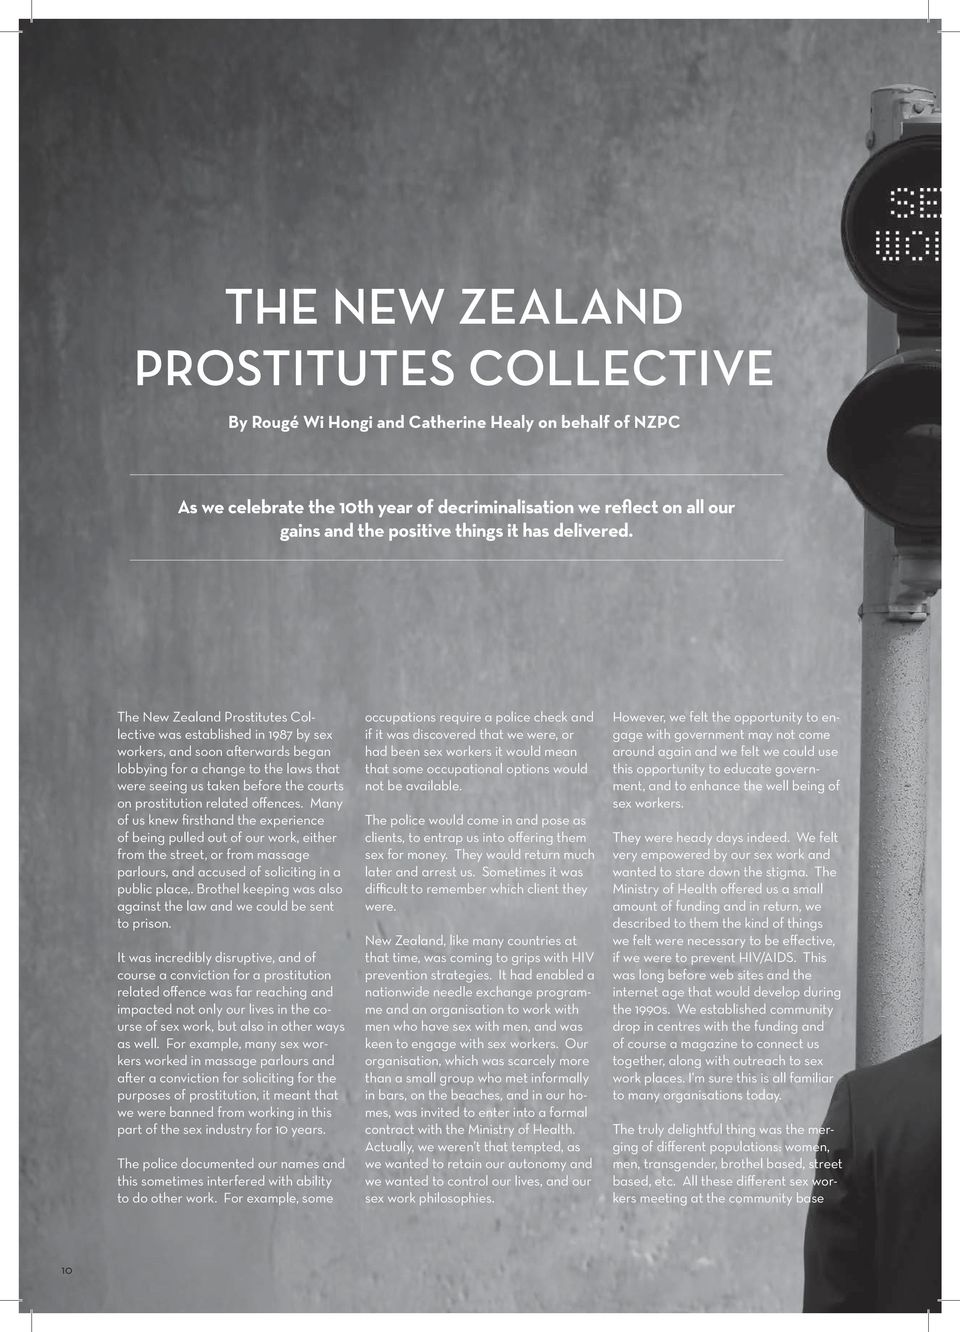 The New Zealand Prostitutes Collective was established in 1987 by sex workers, and soon afterwards began lobbying for a change to the laws that were seeing us taken before the courts on prostitution